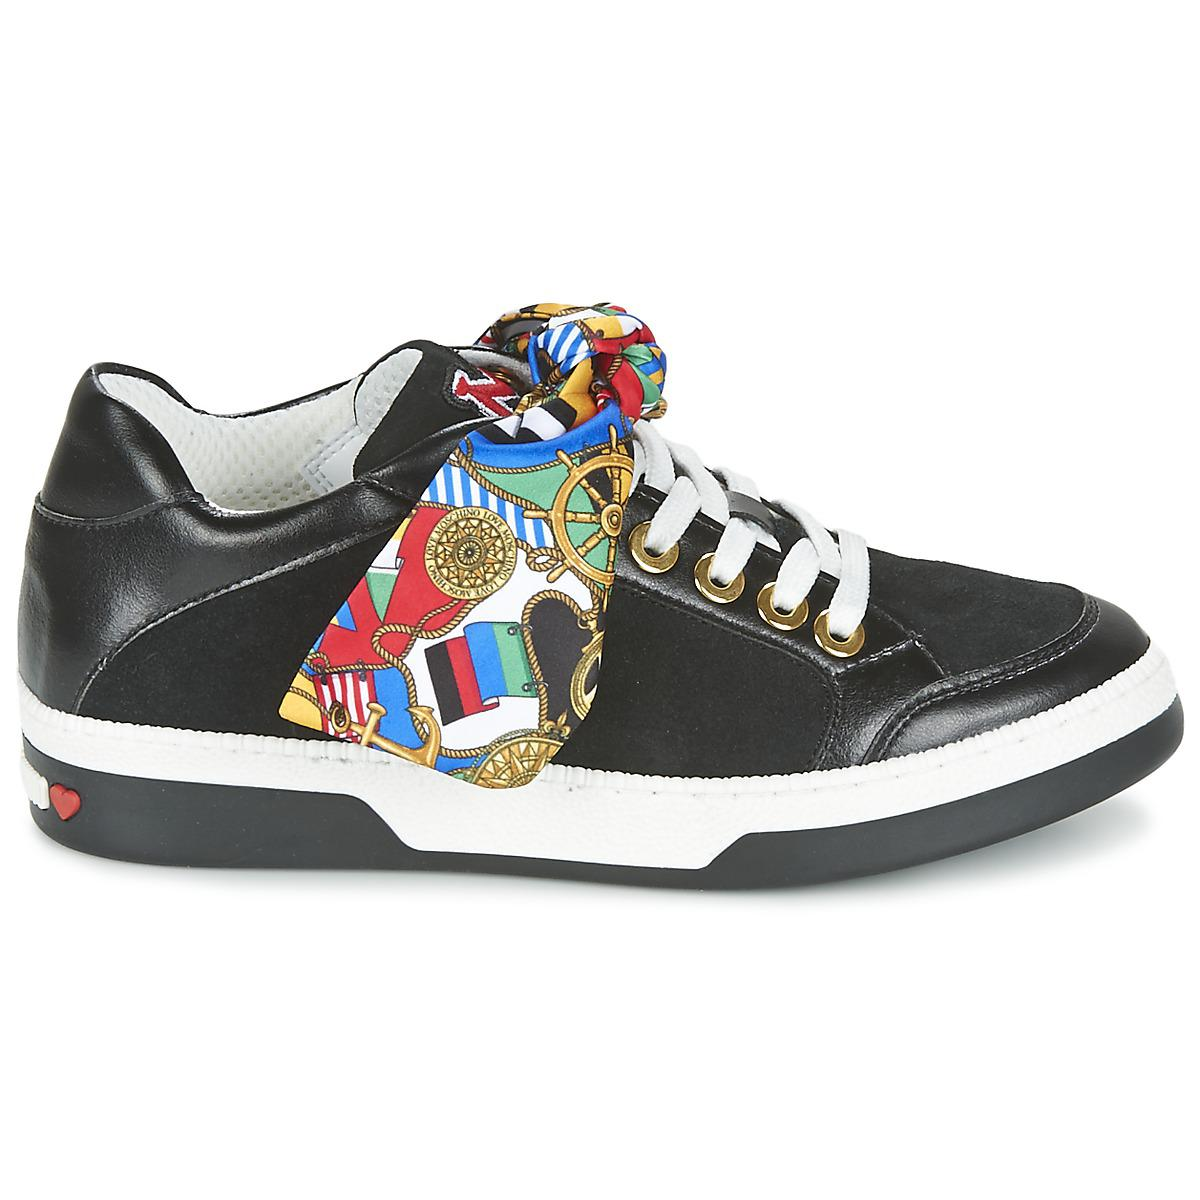 Moschino I LOVE FOULARD 15054 women's Shoes (Trainers) in Sale 2018 New Cheap Sale Order WoqO8f